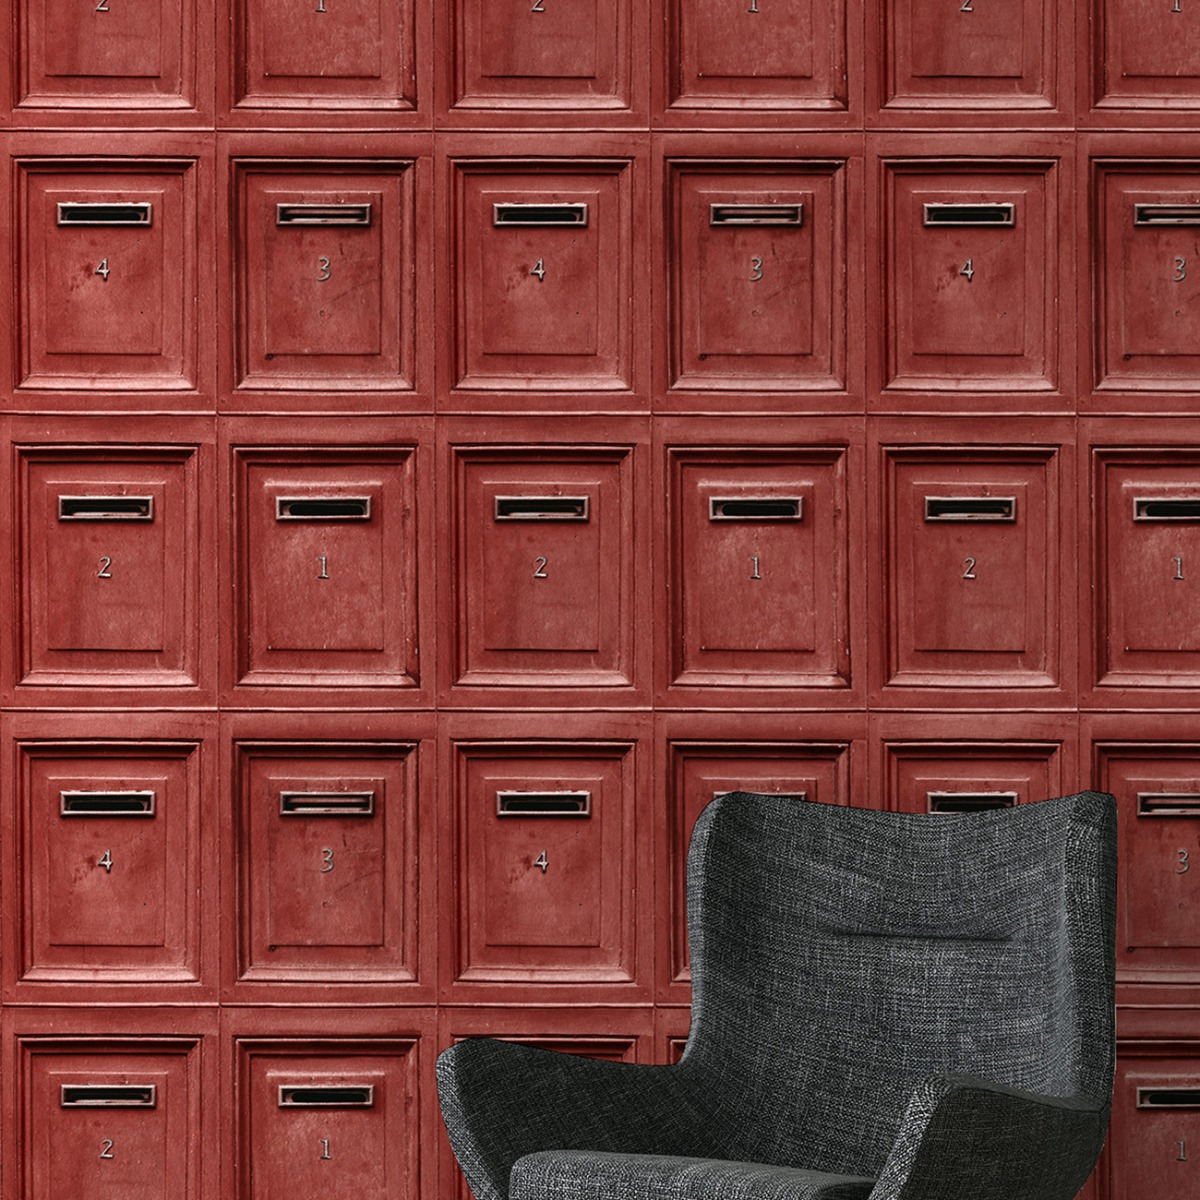 Vintage Mail Box Wallpaper Red AS Creation 30745-3